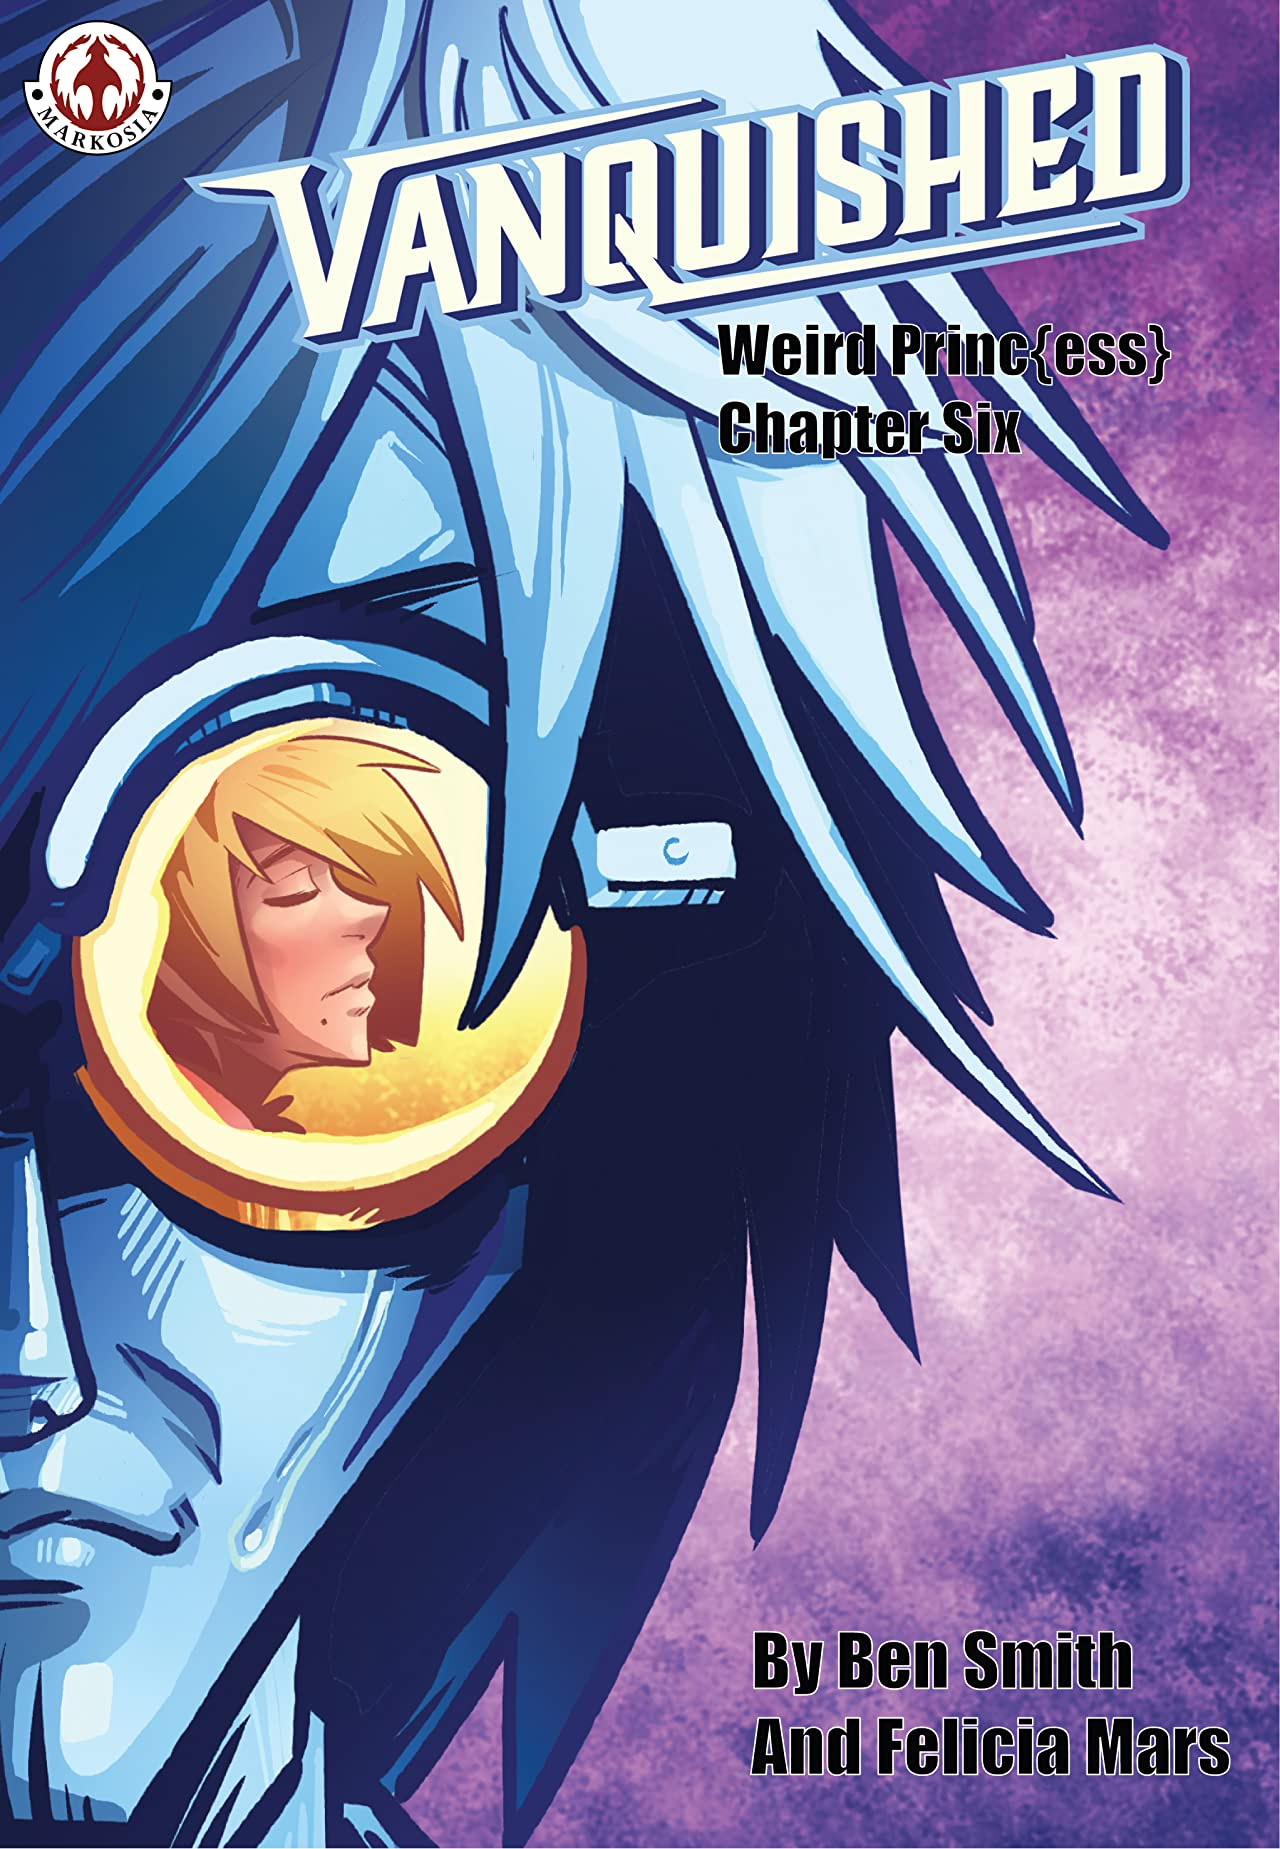 Vanquished: Weird Princess Vol. 1 #6